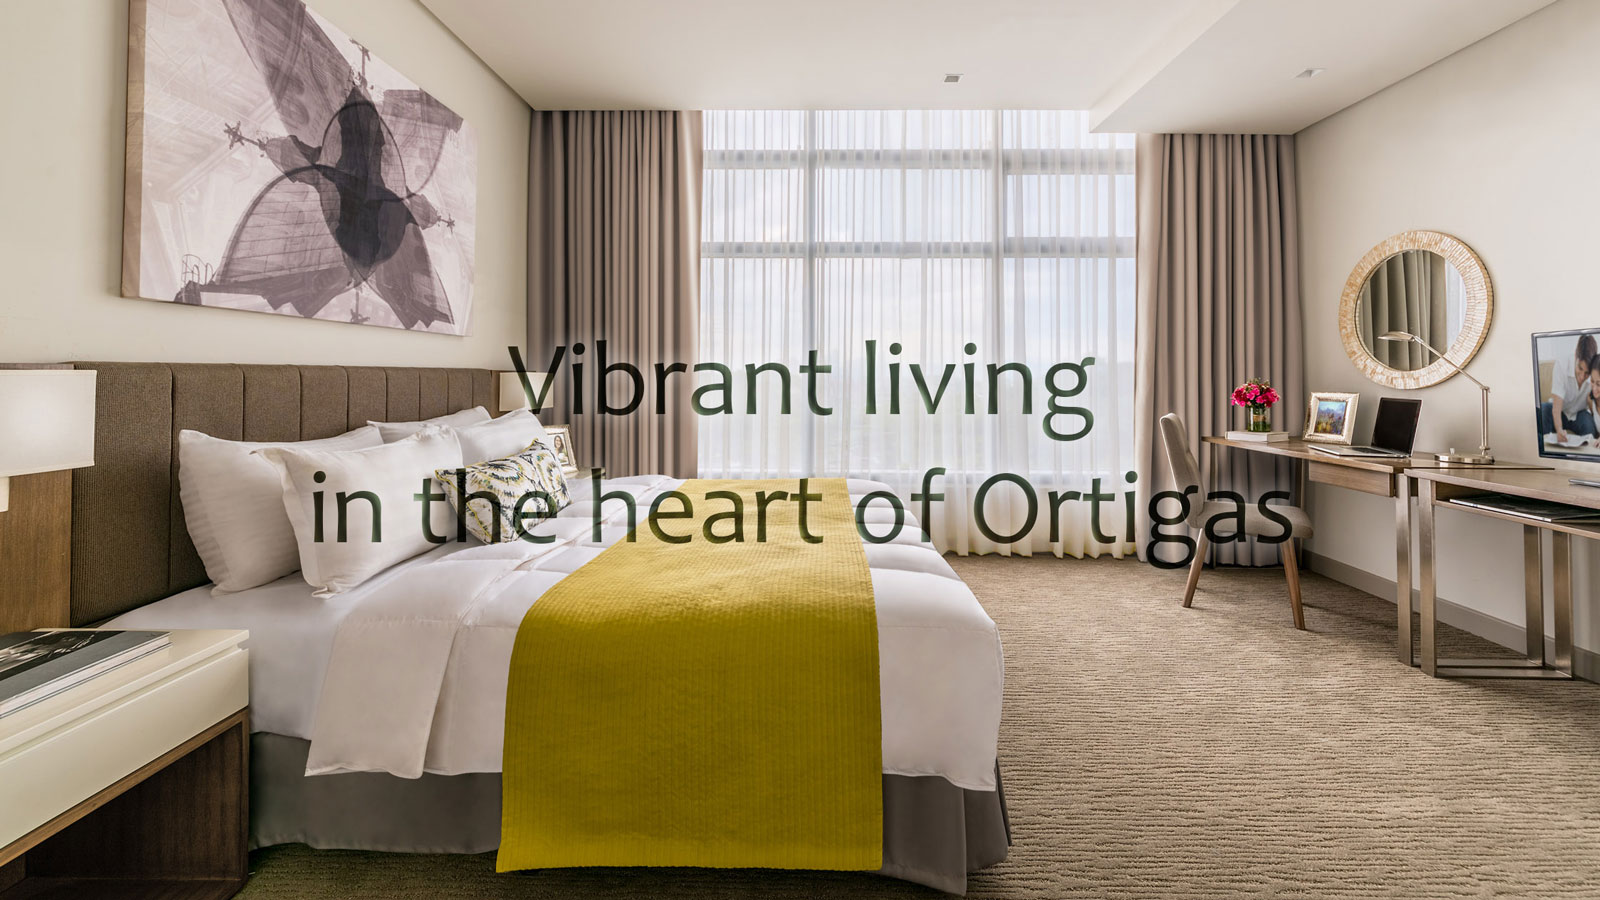 Vibrant living at Citadines Millenium Ortigas